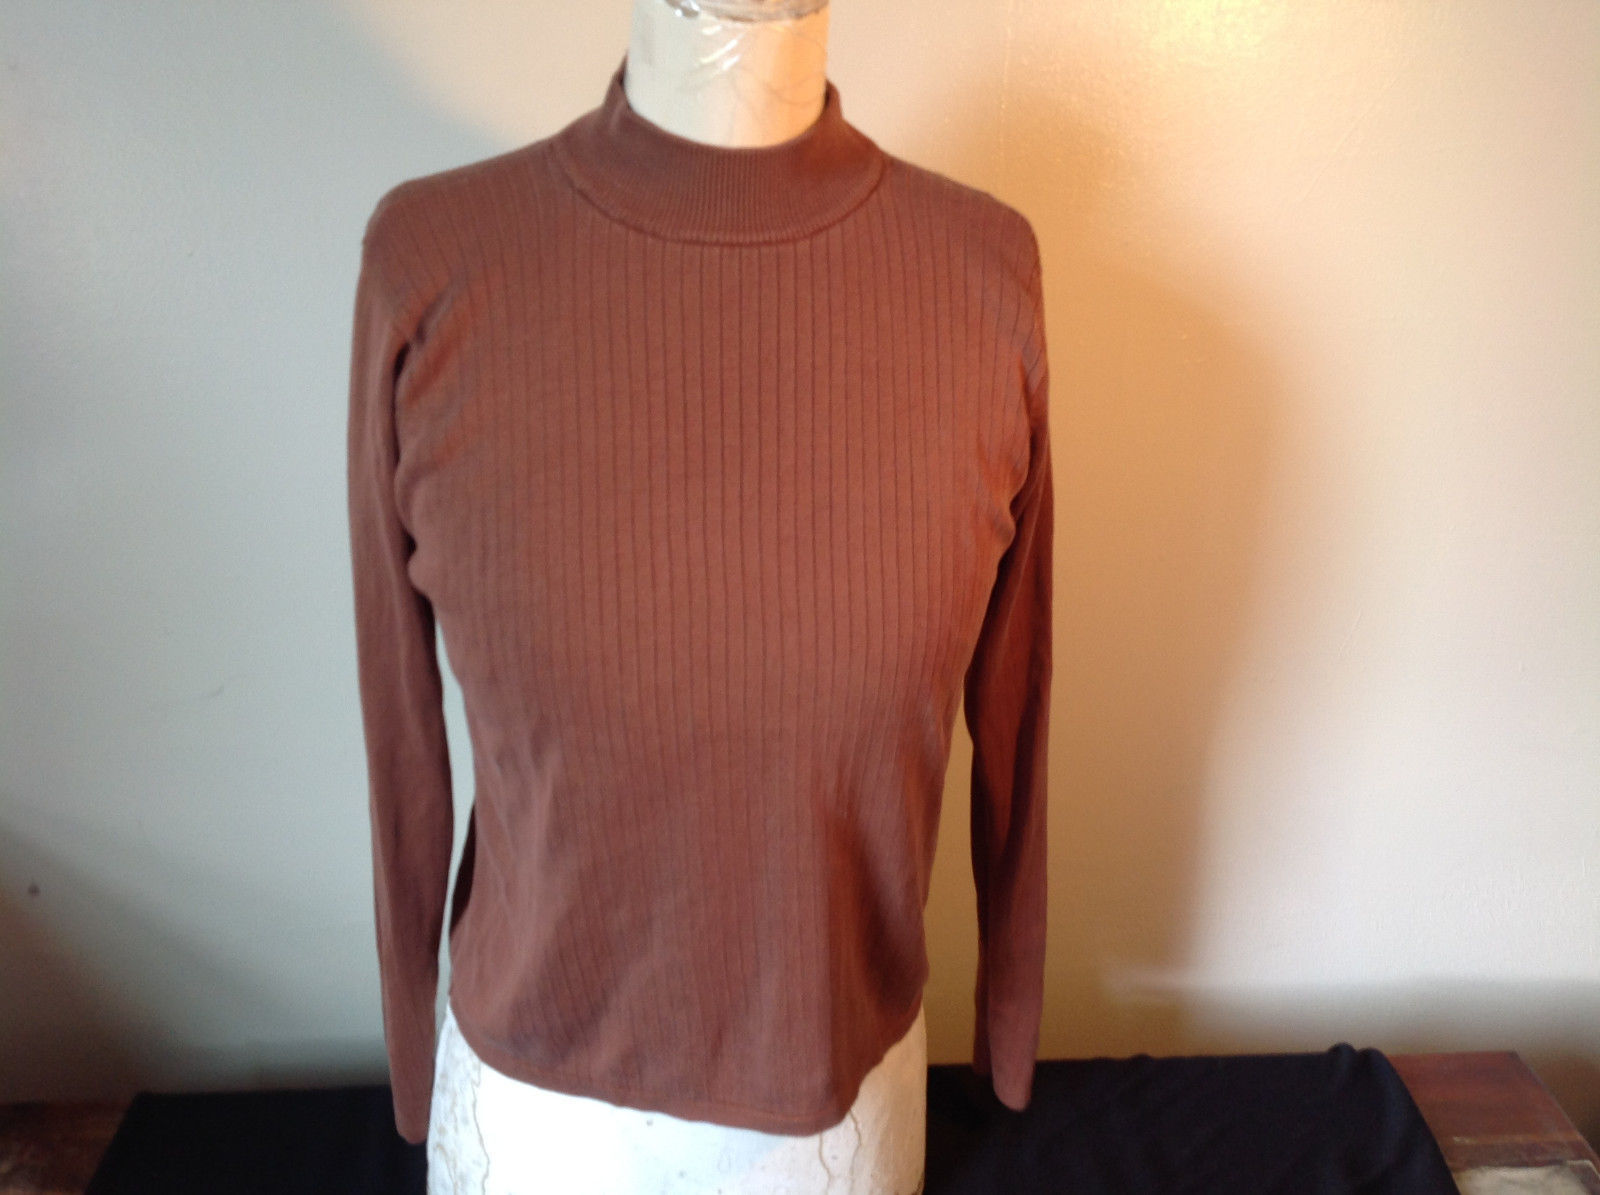 Stephanie Andrews Brown Long Sleeve Turtleneck Shirt Striped Design Size M